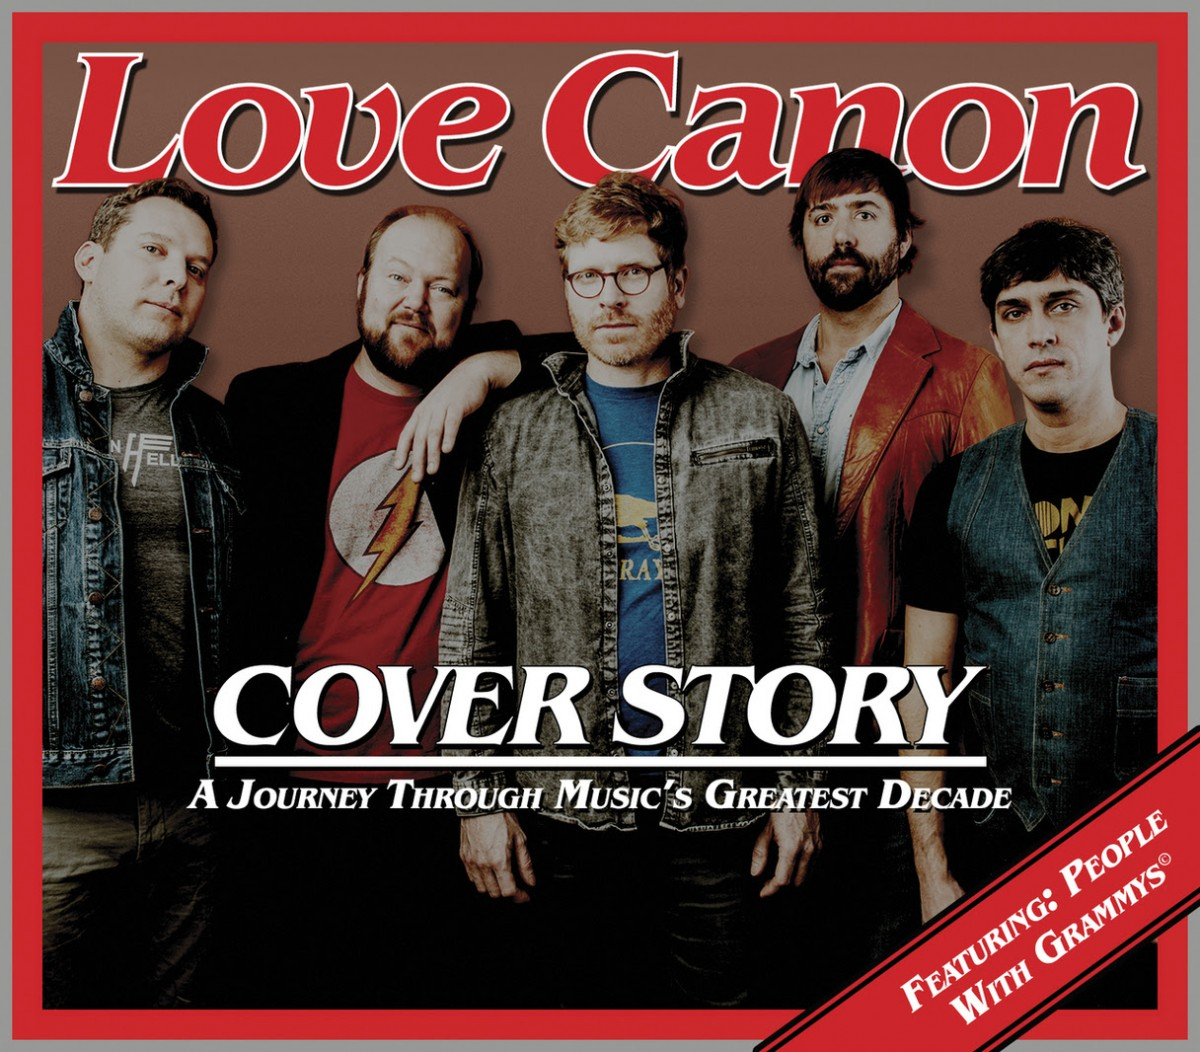 Love Canon is on their way to releasing their new album Cover Story July 13